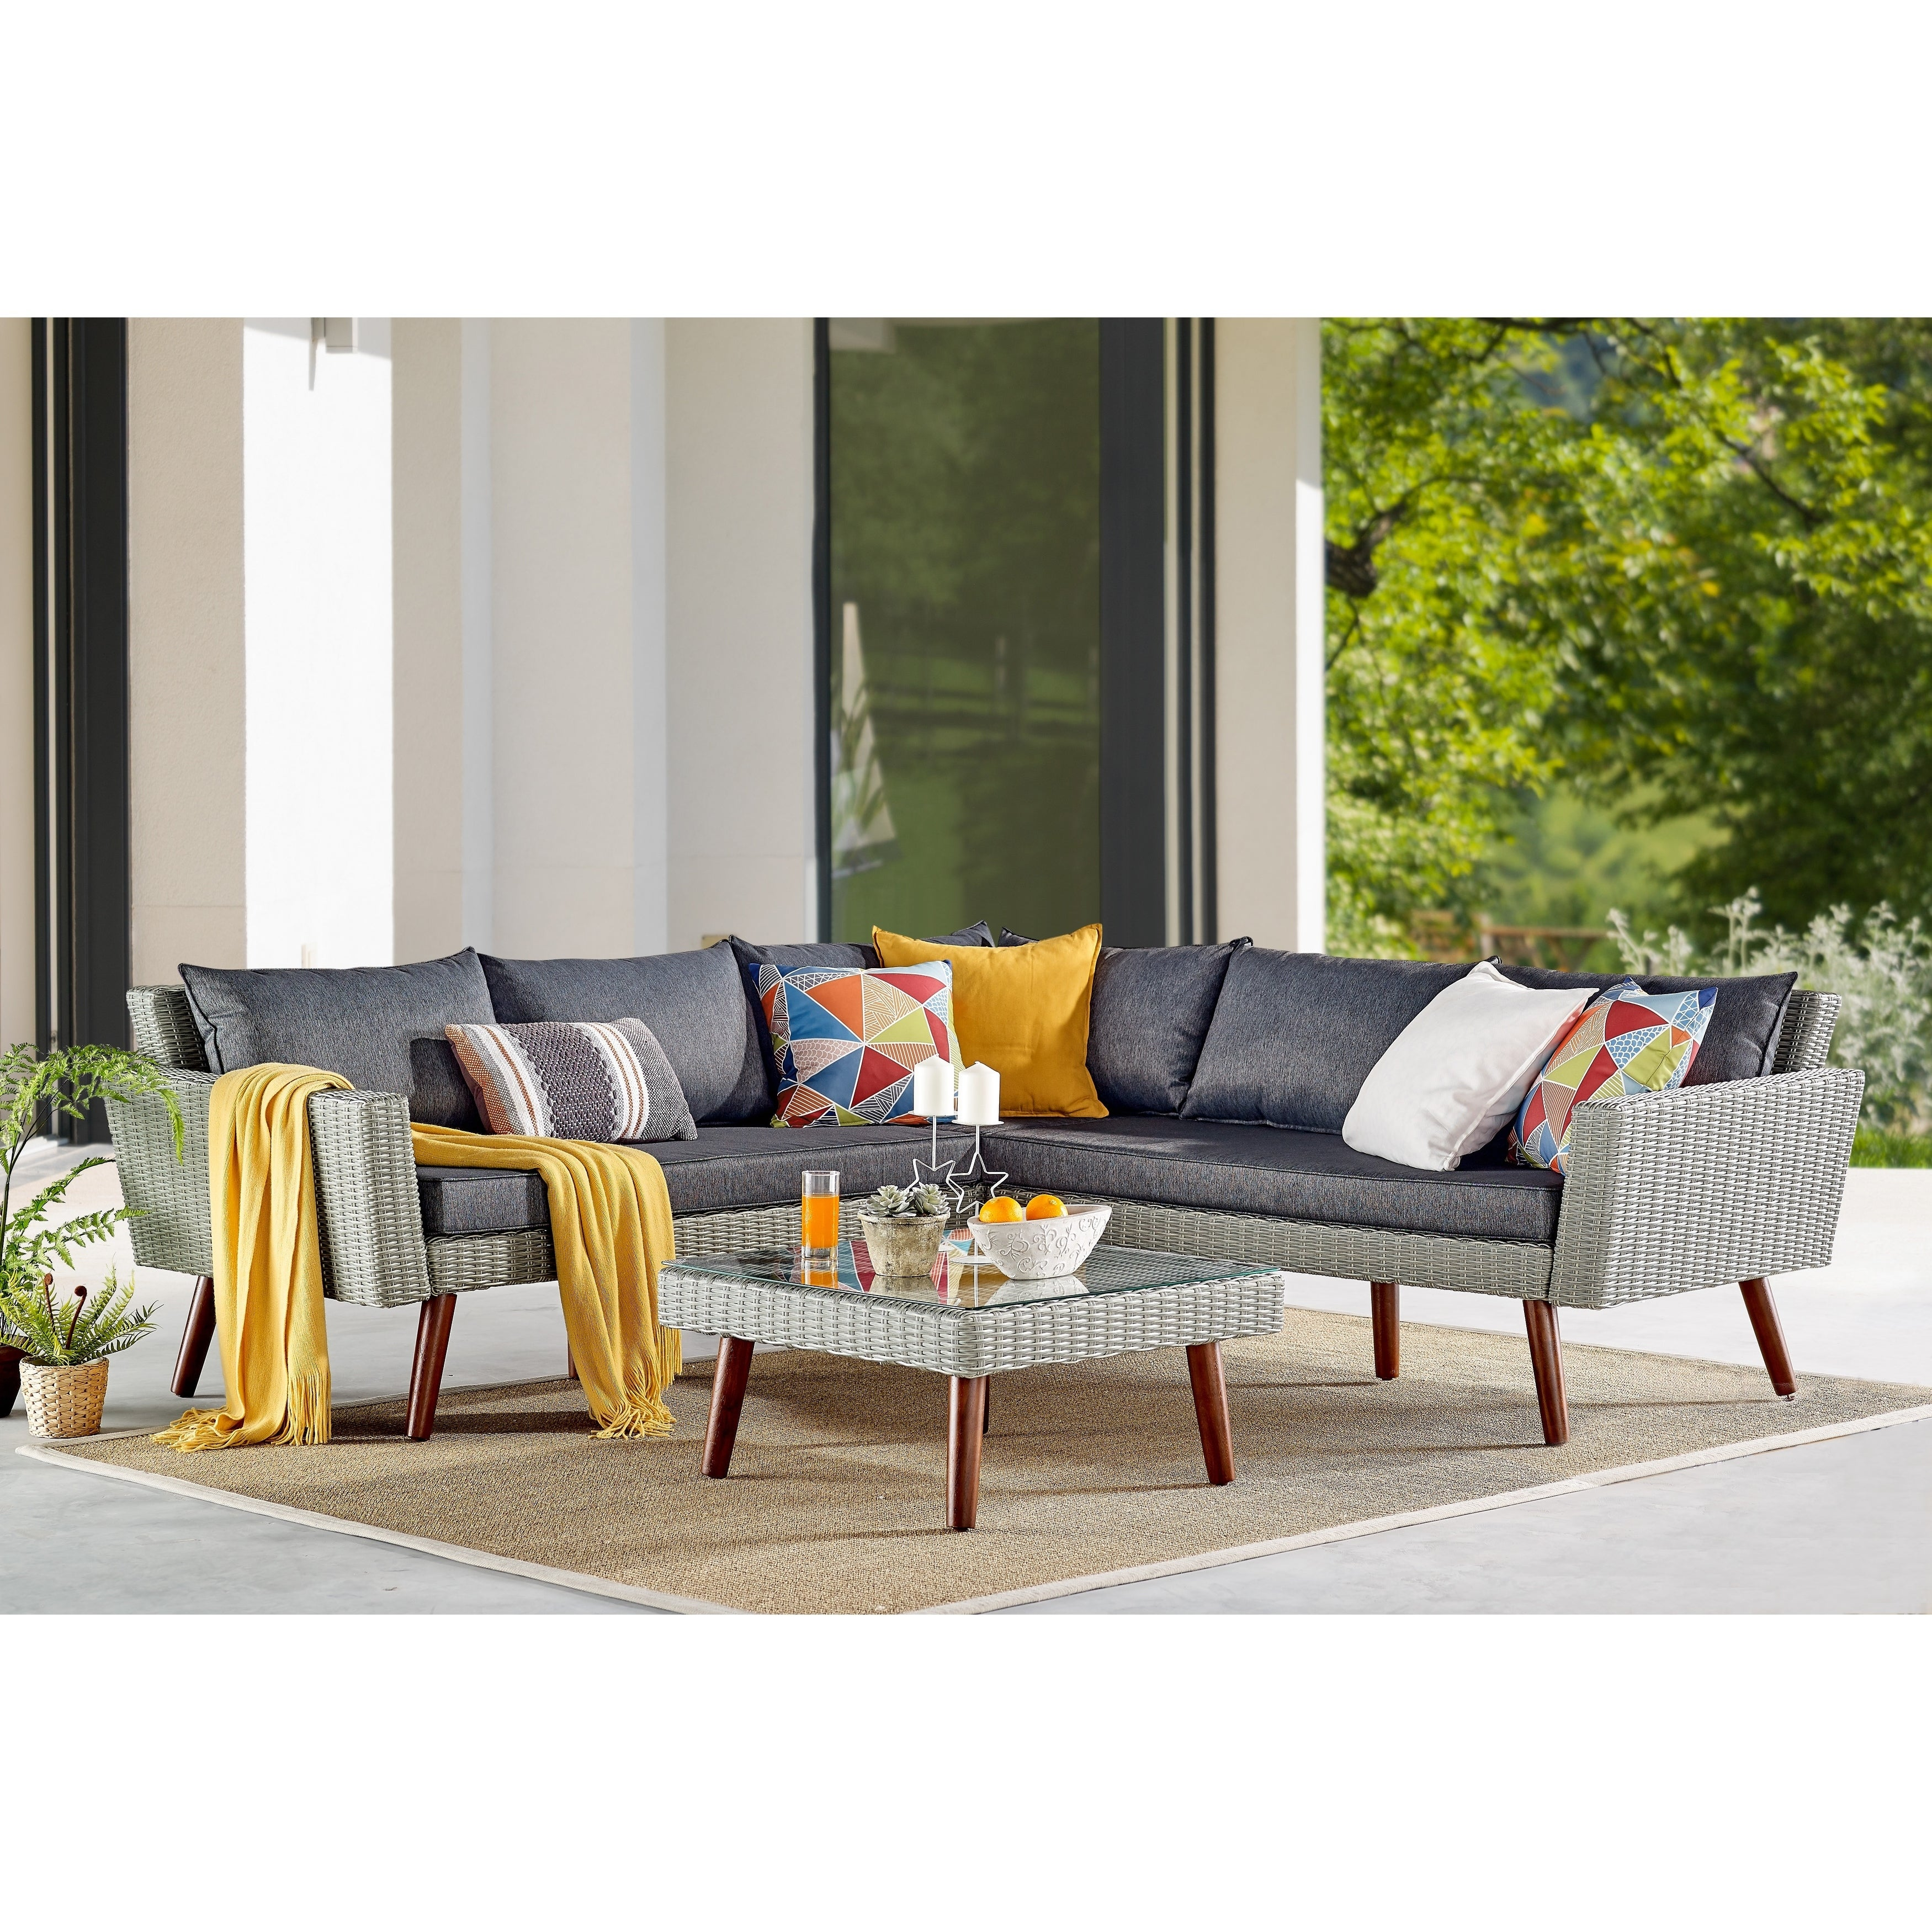 Shop Albany All Weather Wicker Outdoor Corner Sectional Sofa With